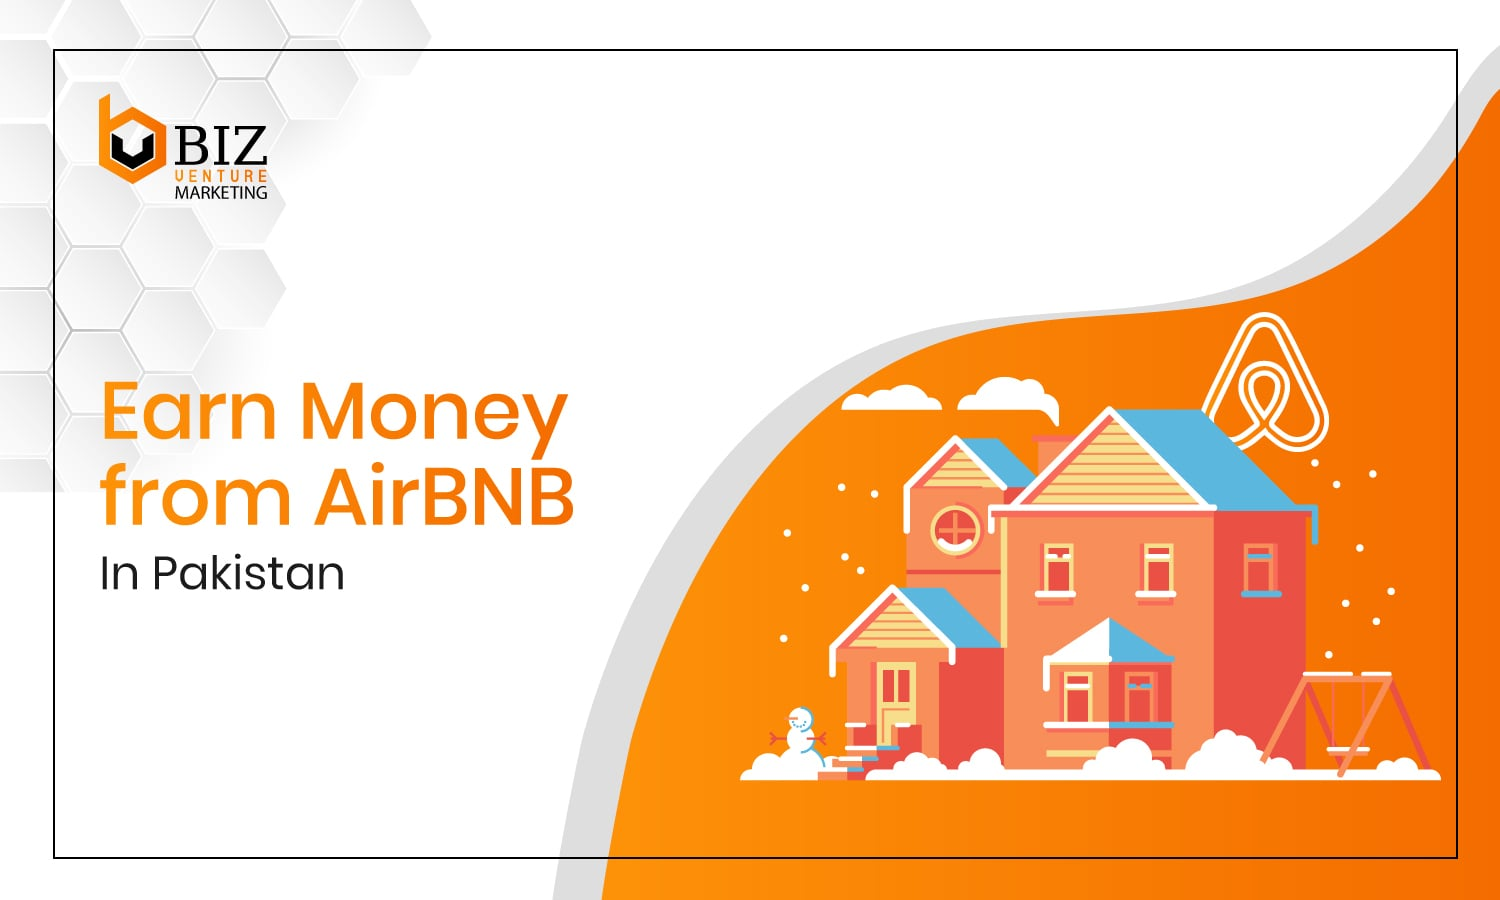 Earn money from airbnb